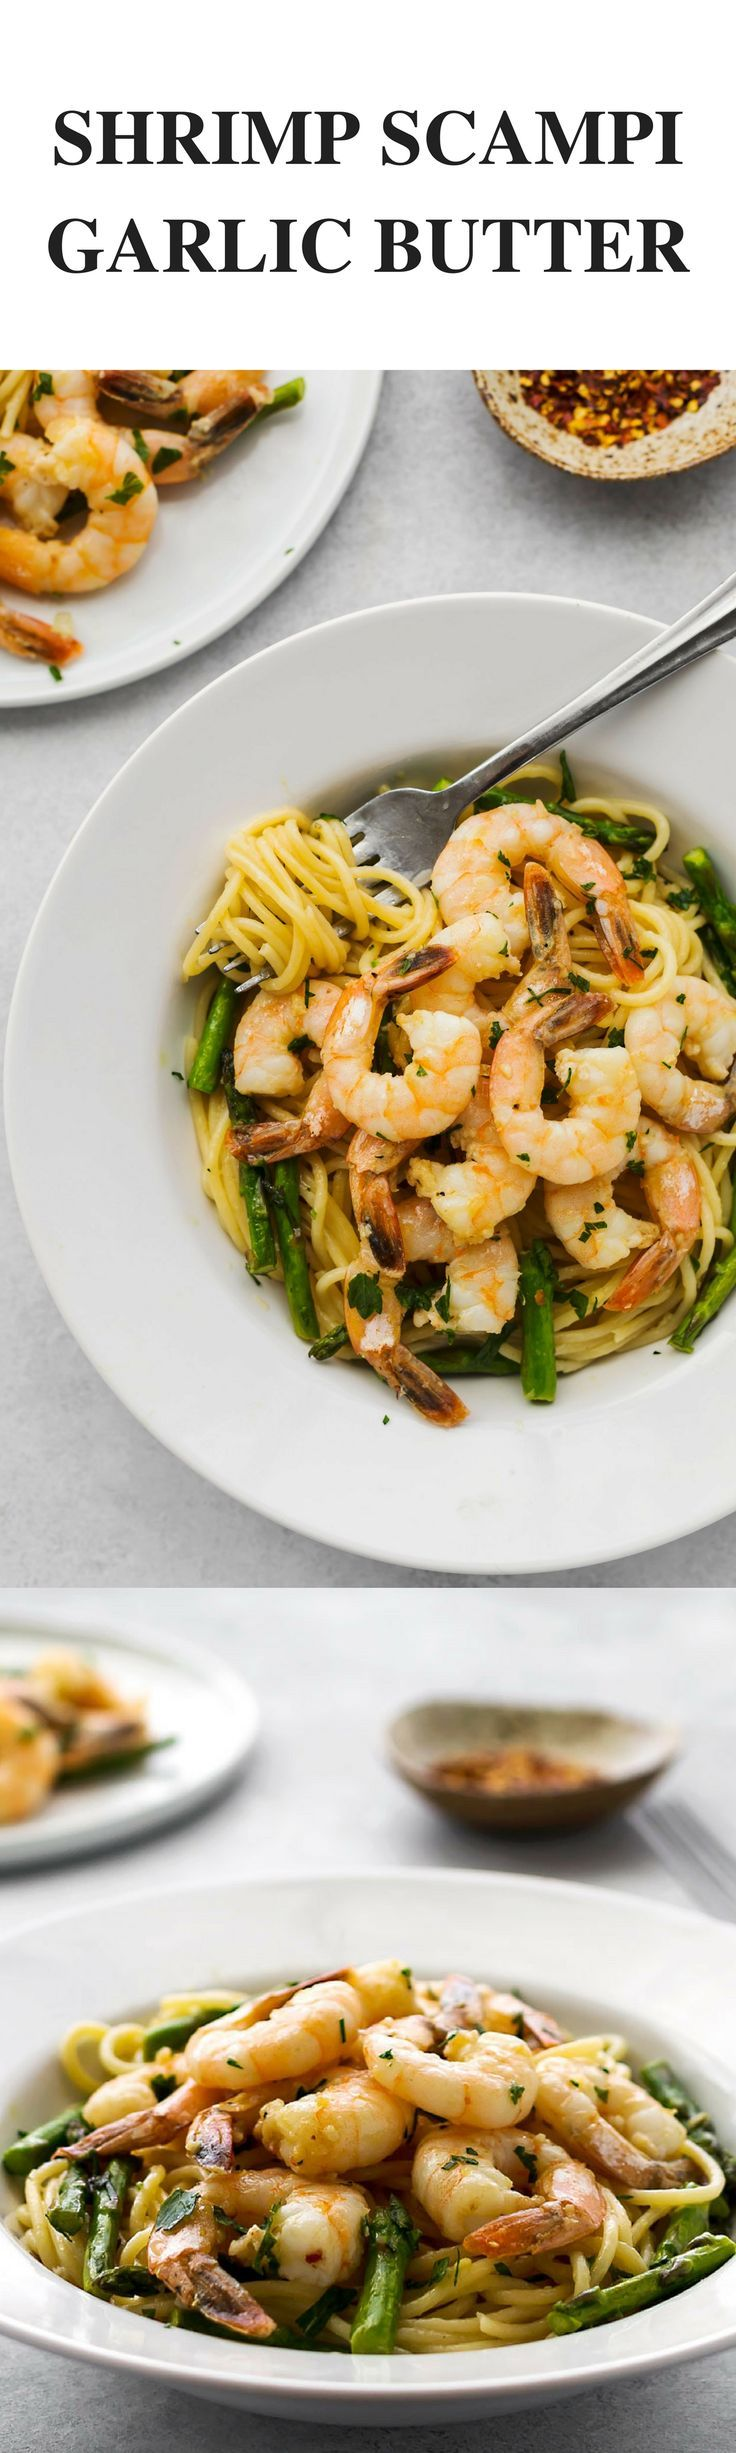 Easy Pasta Recipes. Garlic Butter Shrimp Scampi Pasta with Asparagus. Cooked in white wine shrimp stock to boost the flavor. Quick dinner recipe for any weekday.